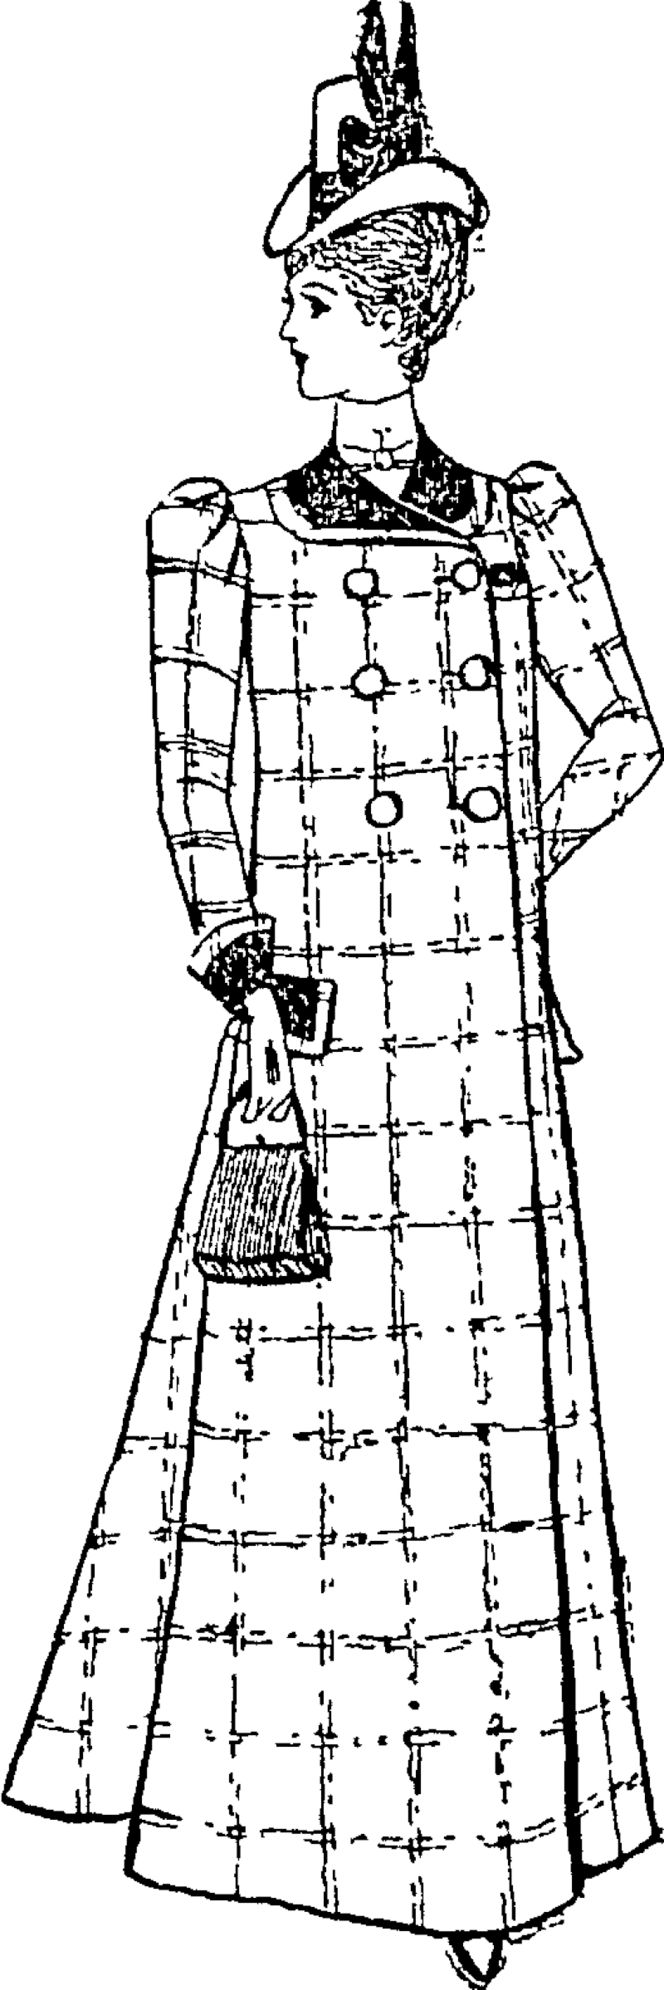 A TRAVELLING COAT (Auckland Star, 12 February 1898)